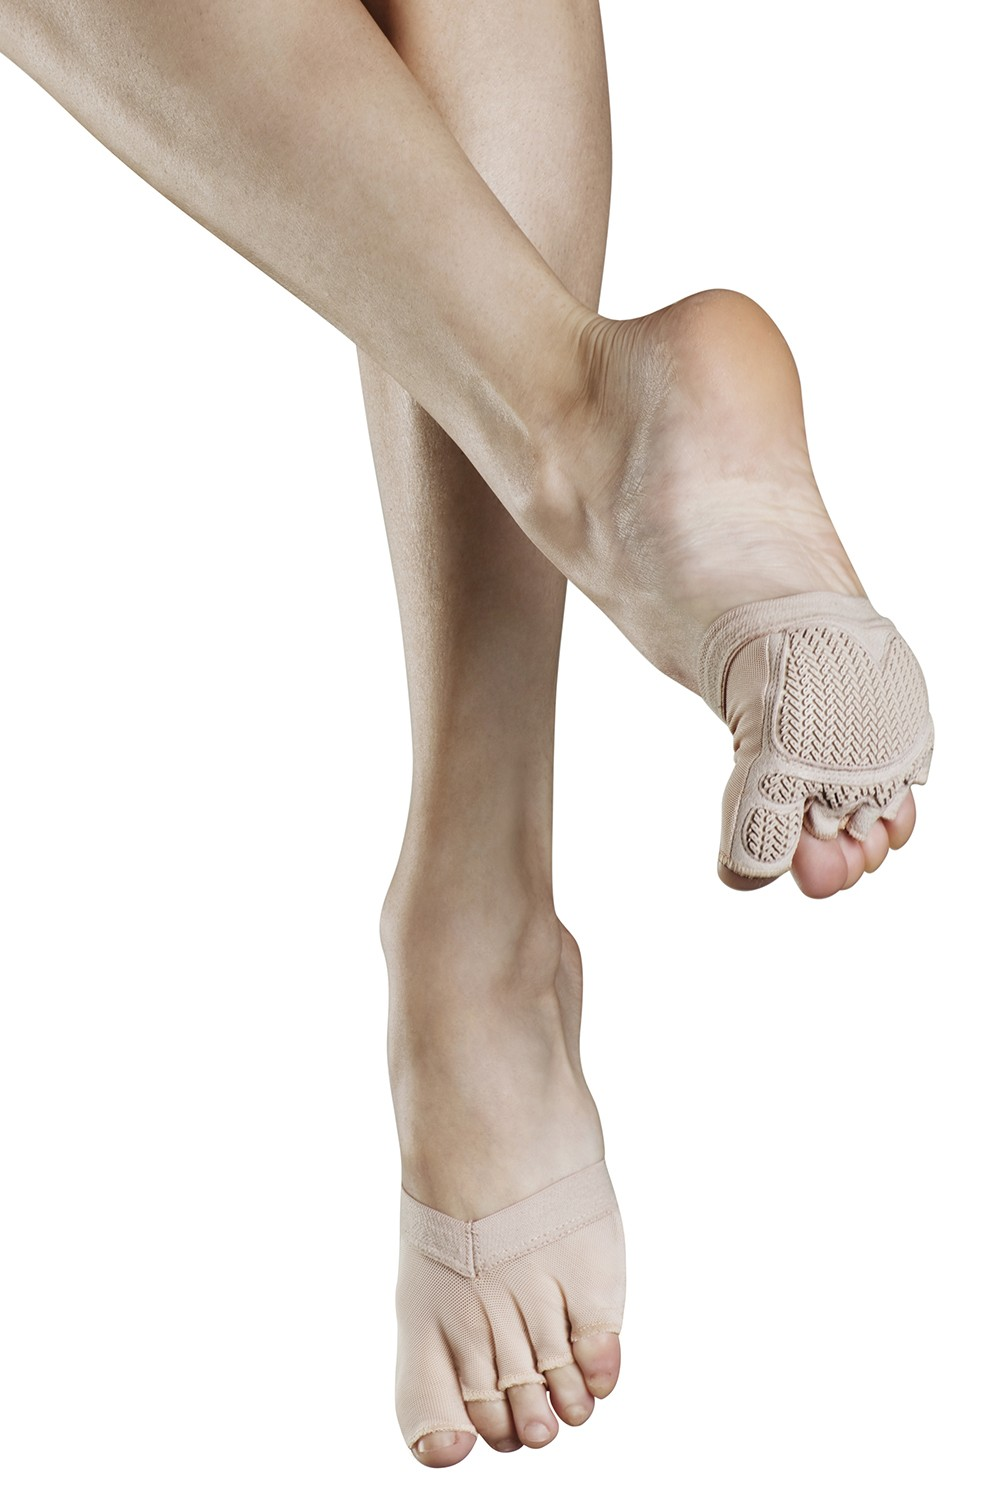 Tactiq Women's Contemporary Dance Shoes